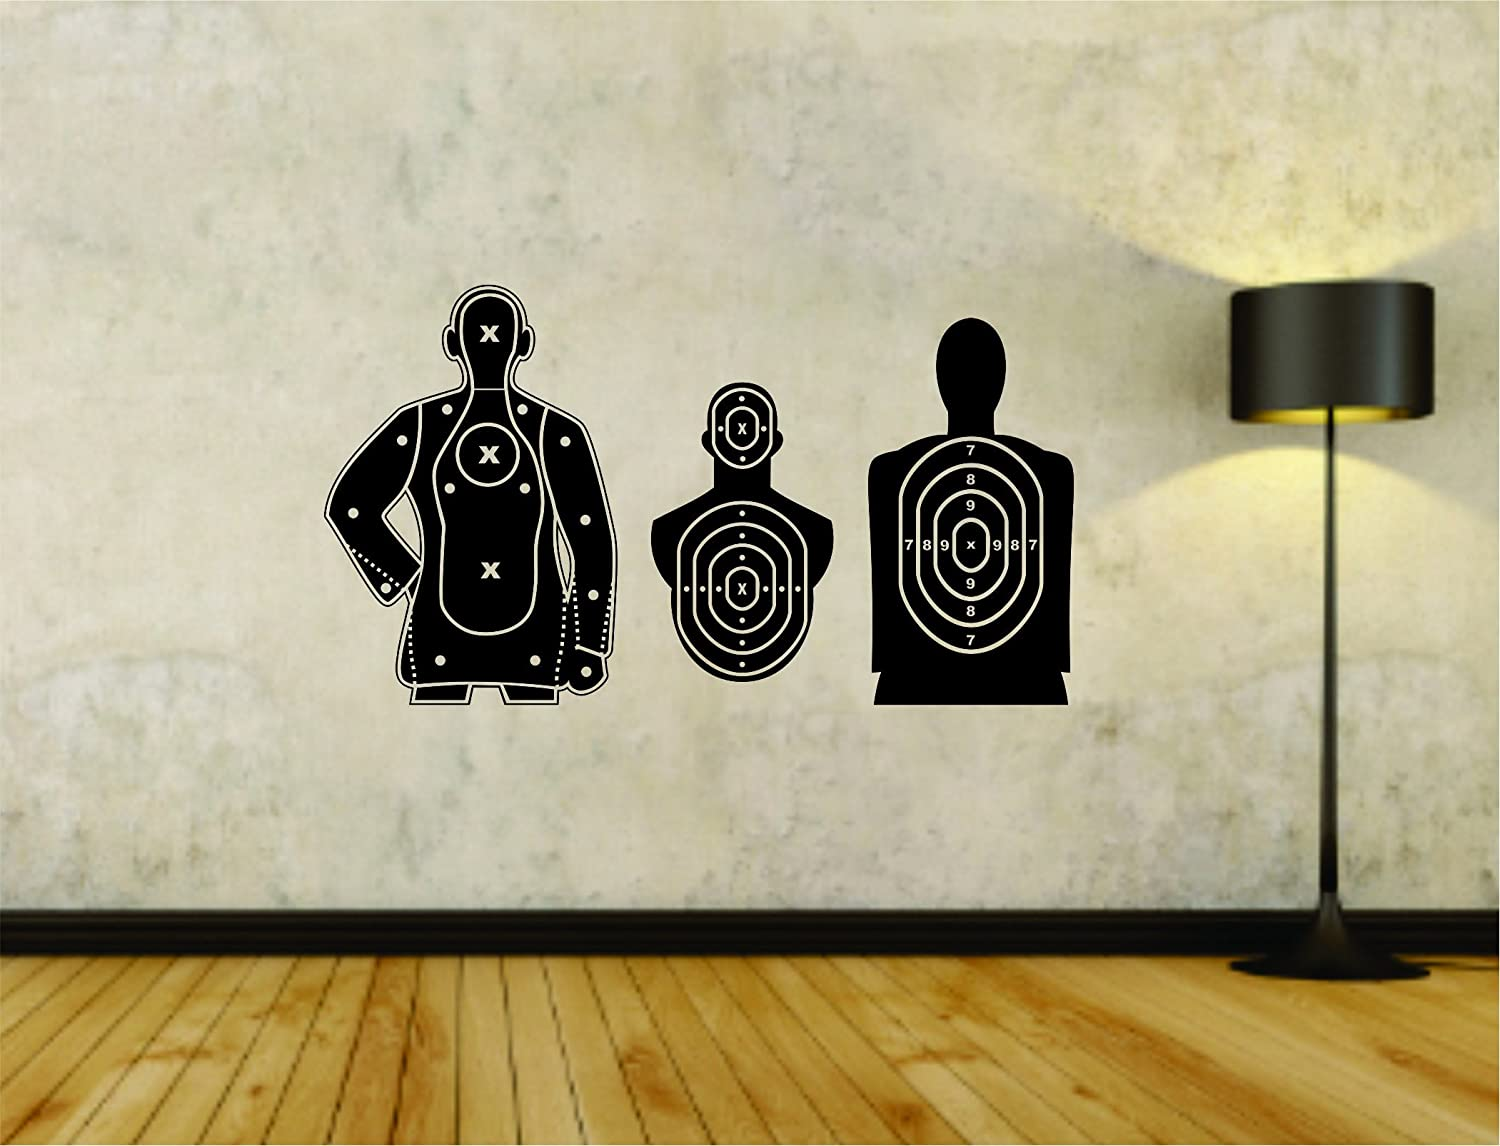 Target Targets for Shooting Display Store Business Weapon Training Vinyl Wall Decal Sticker Car Window Truck Decals Stickers Target01OCC4 16x28